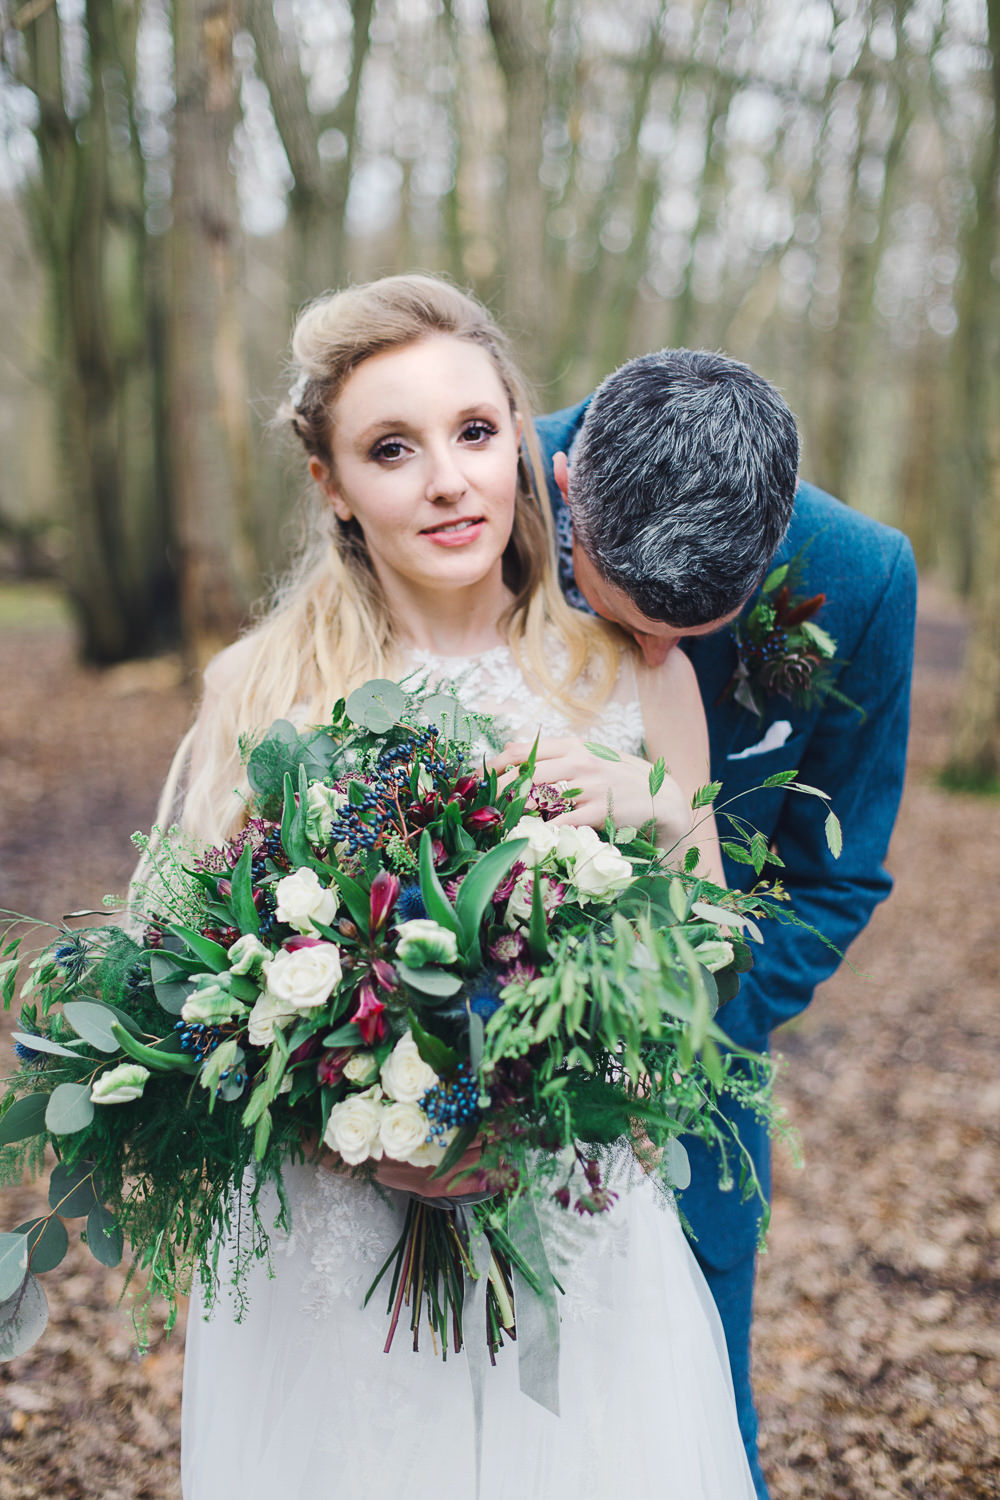 Bouquet Flowers Bride Bridal Greenery Foliage Rose Berry Burgundy Thistle Nordic Woodland Elopement Wedding Ideas Nina Wernicke Photography